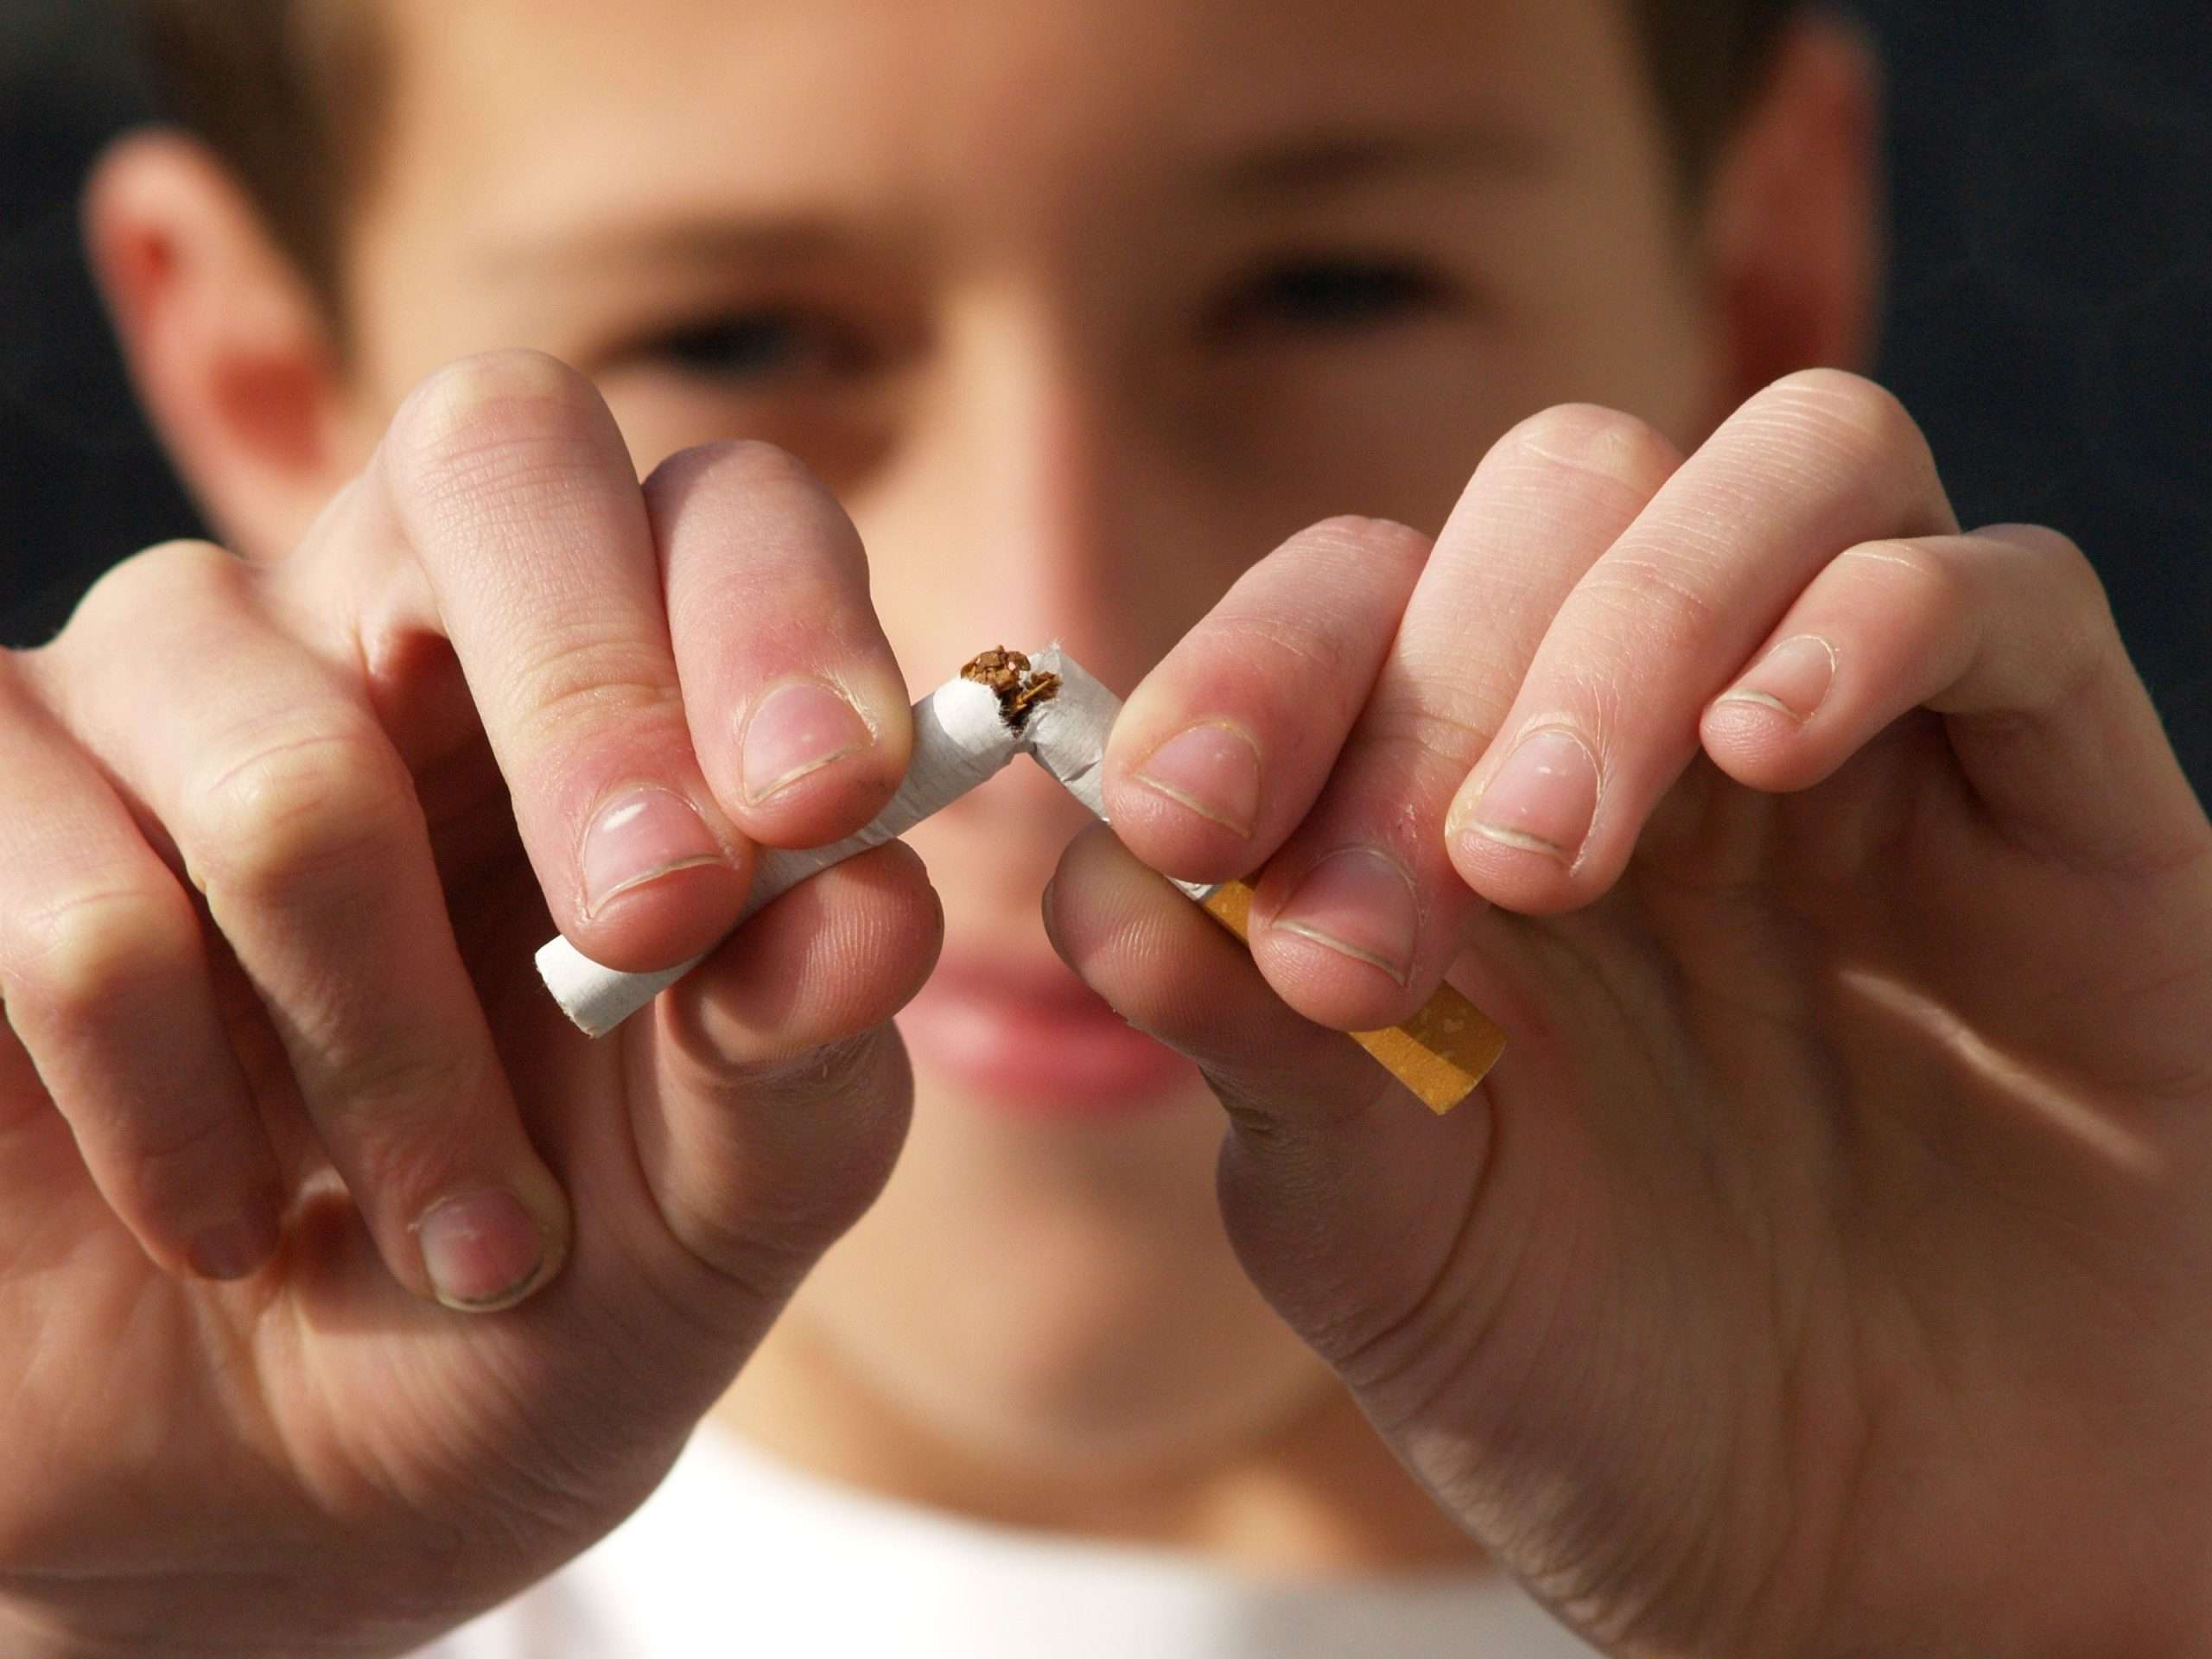 21046 Dentist | Tobacco & Your Teeth: The Risks of Chewing and Smoking